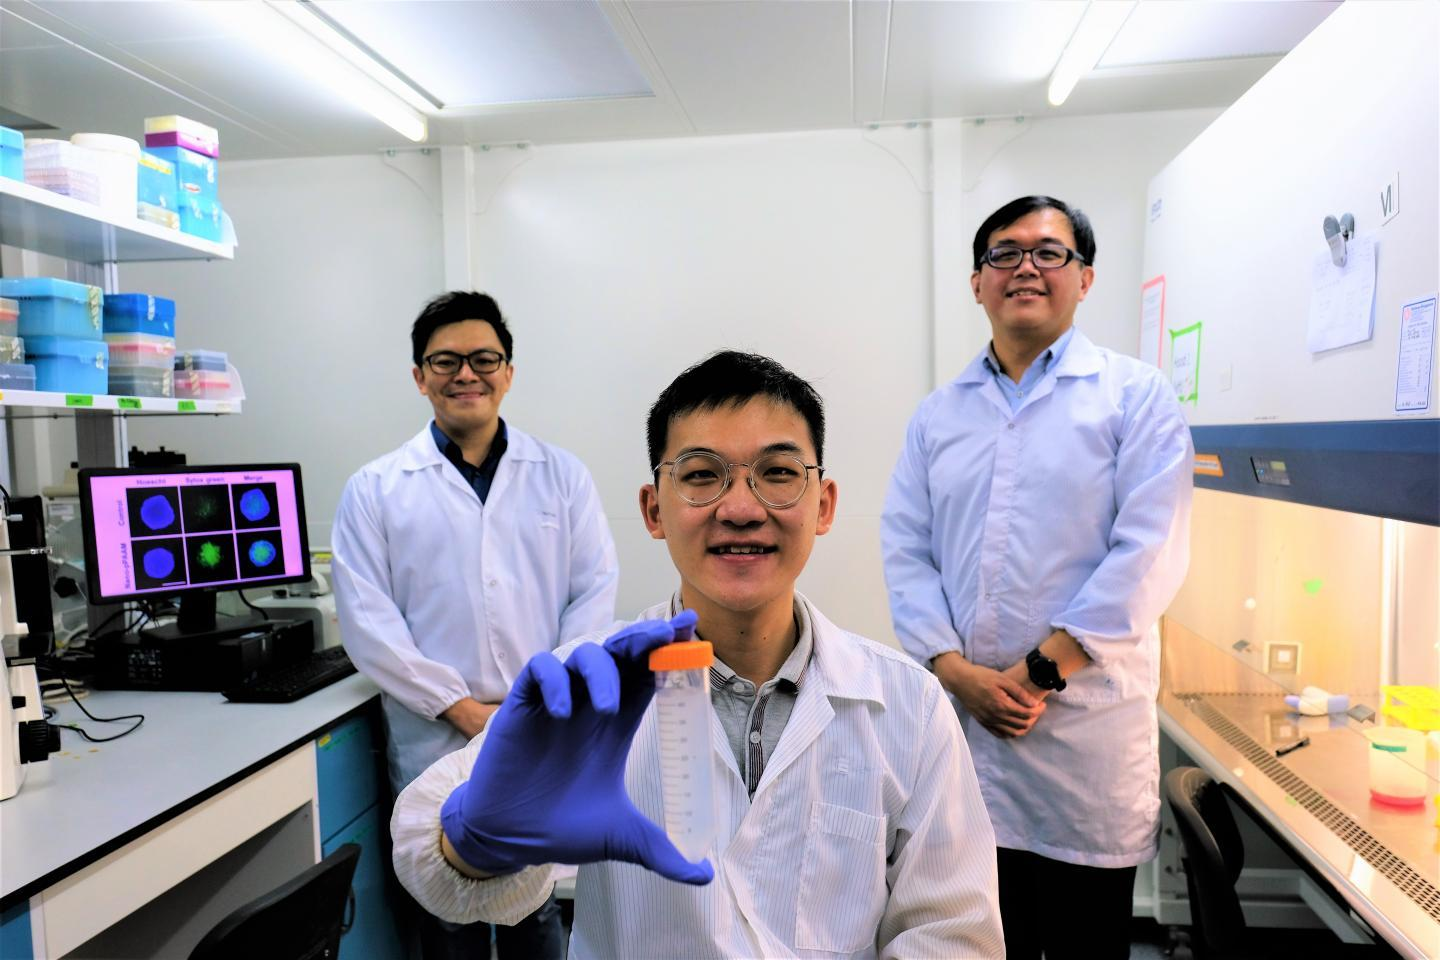 Members of the research team behind the new nanoparticle, from left to right, Assistant Professor Dalton Tay, Research Associate Kenny Wu and Associate Professor Tan Nguan Soon